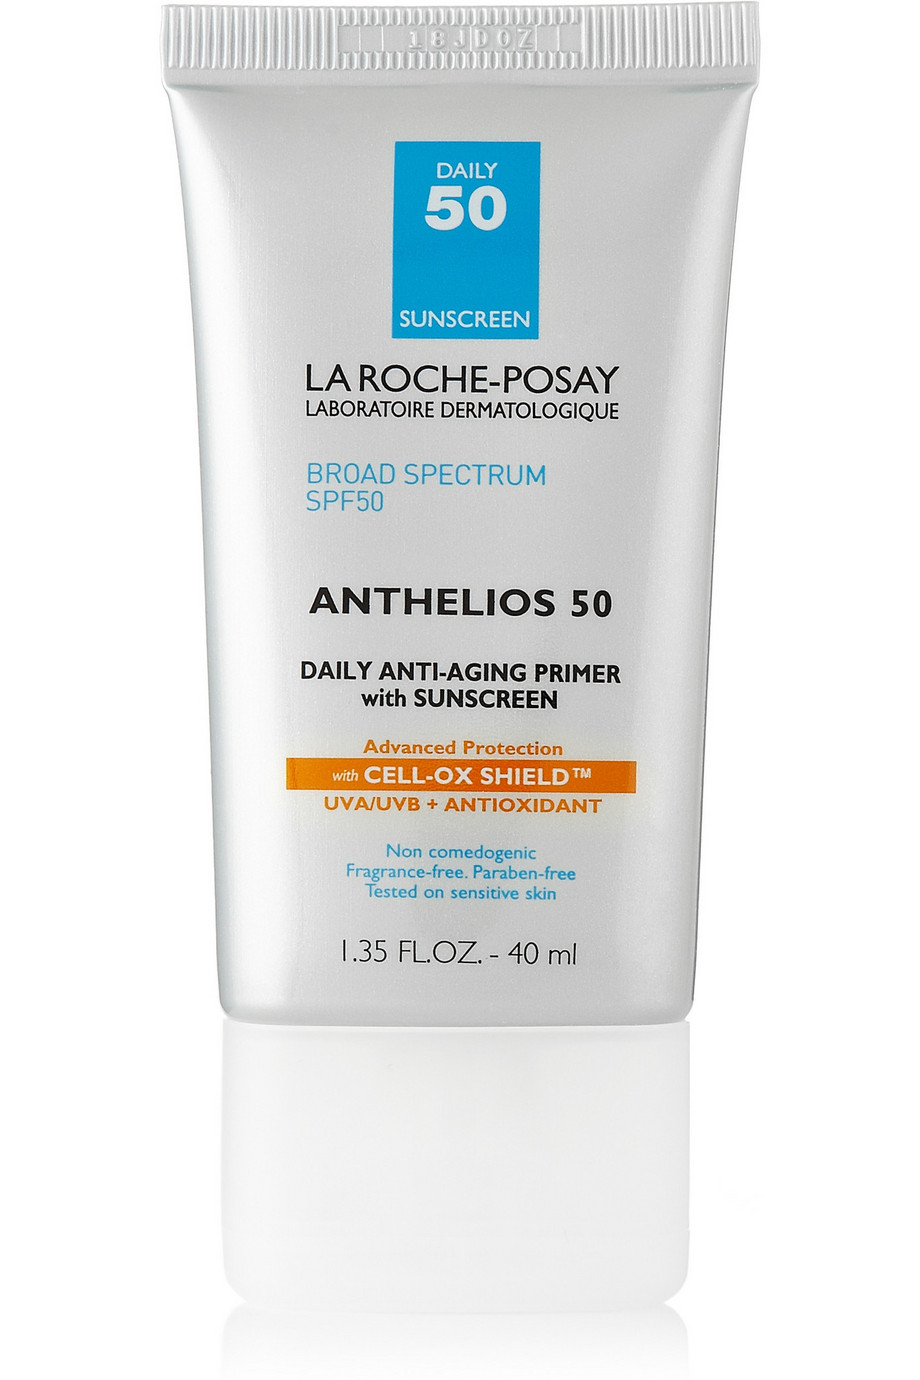 La Roche-Posay Anthelios Daily Anti-Aging Primer Spf50, 40ml